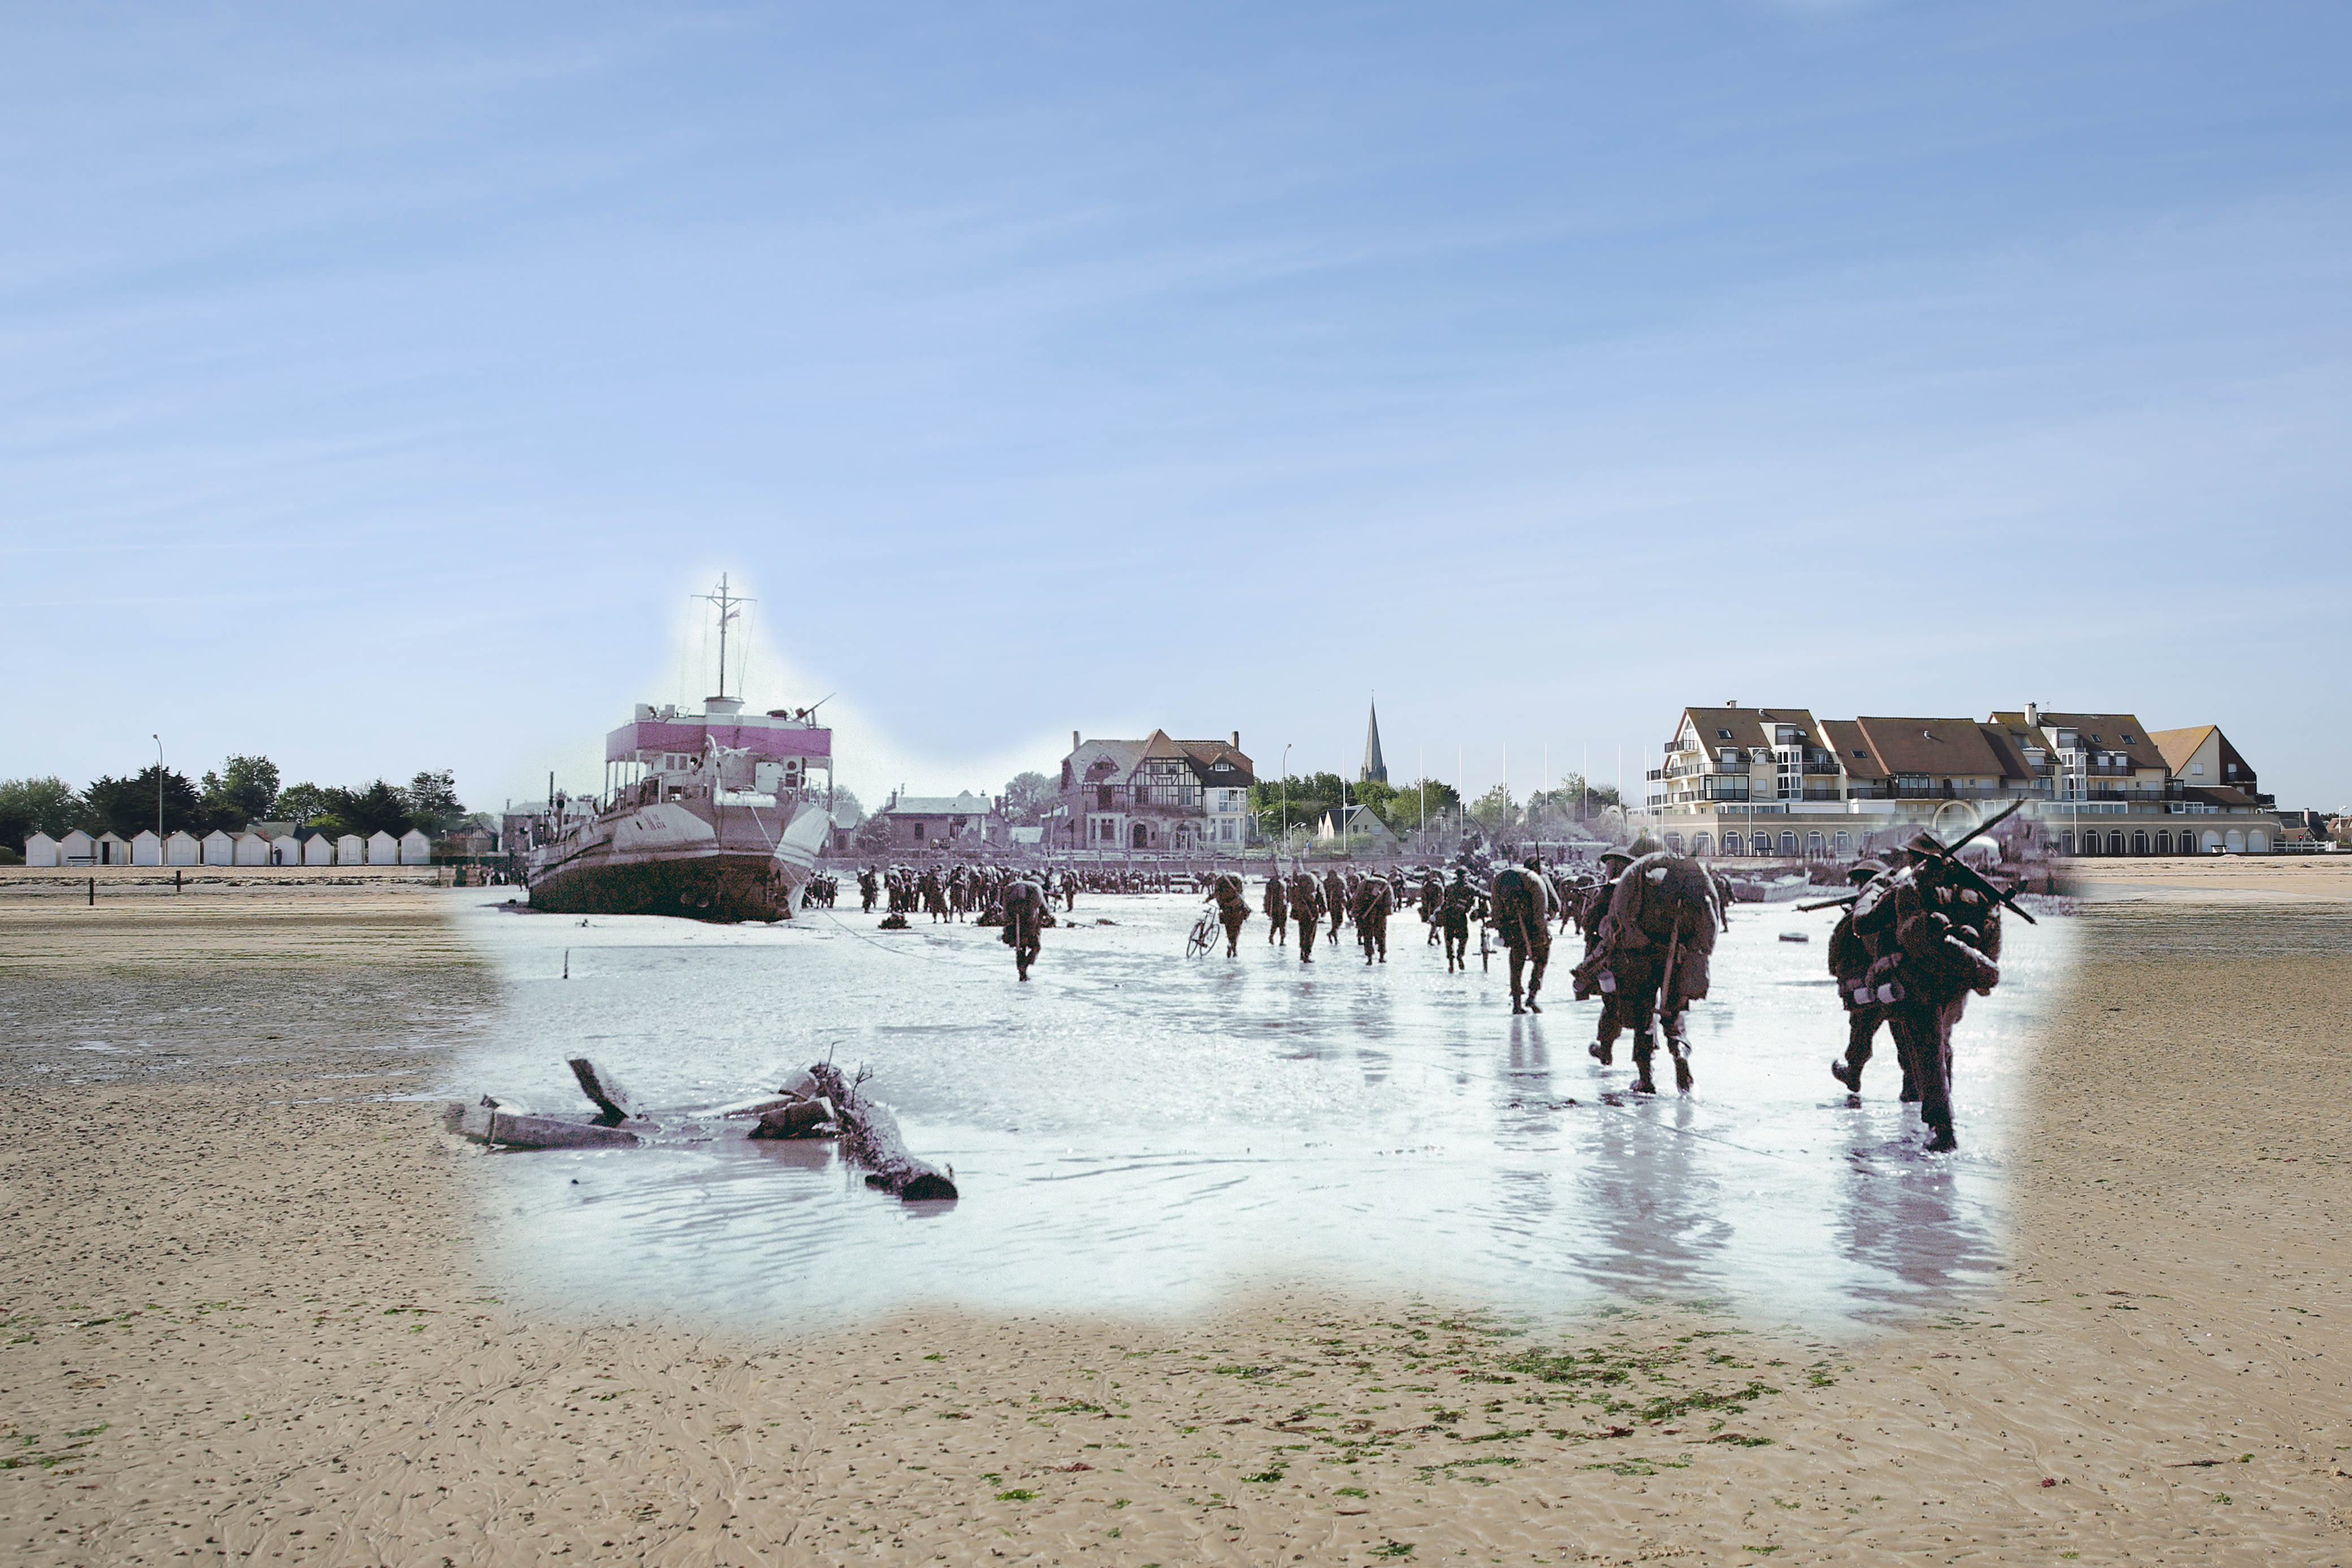 A view of the seafront and Juno beach on May 5, 2014 in Bernieres-sur-Mer, France. Overlay: Troops of the 3rd Canadian Infantry Division land at Juno Beach on the outskirts of Bernieres-sur-Mer on D-Day. June 6, 1944.